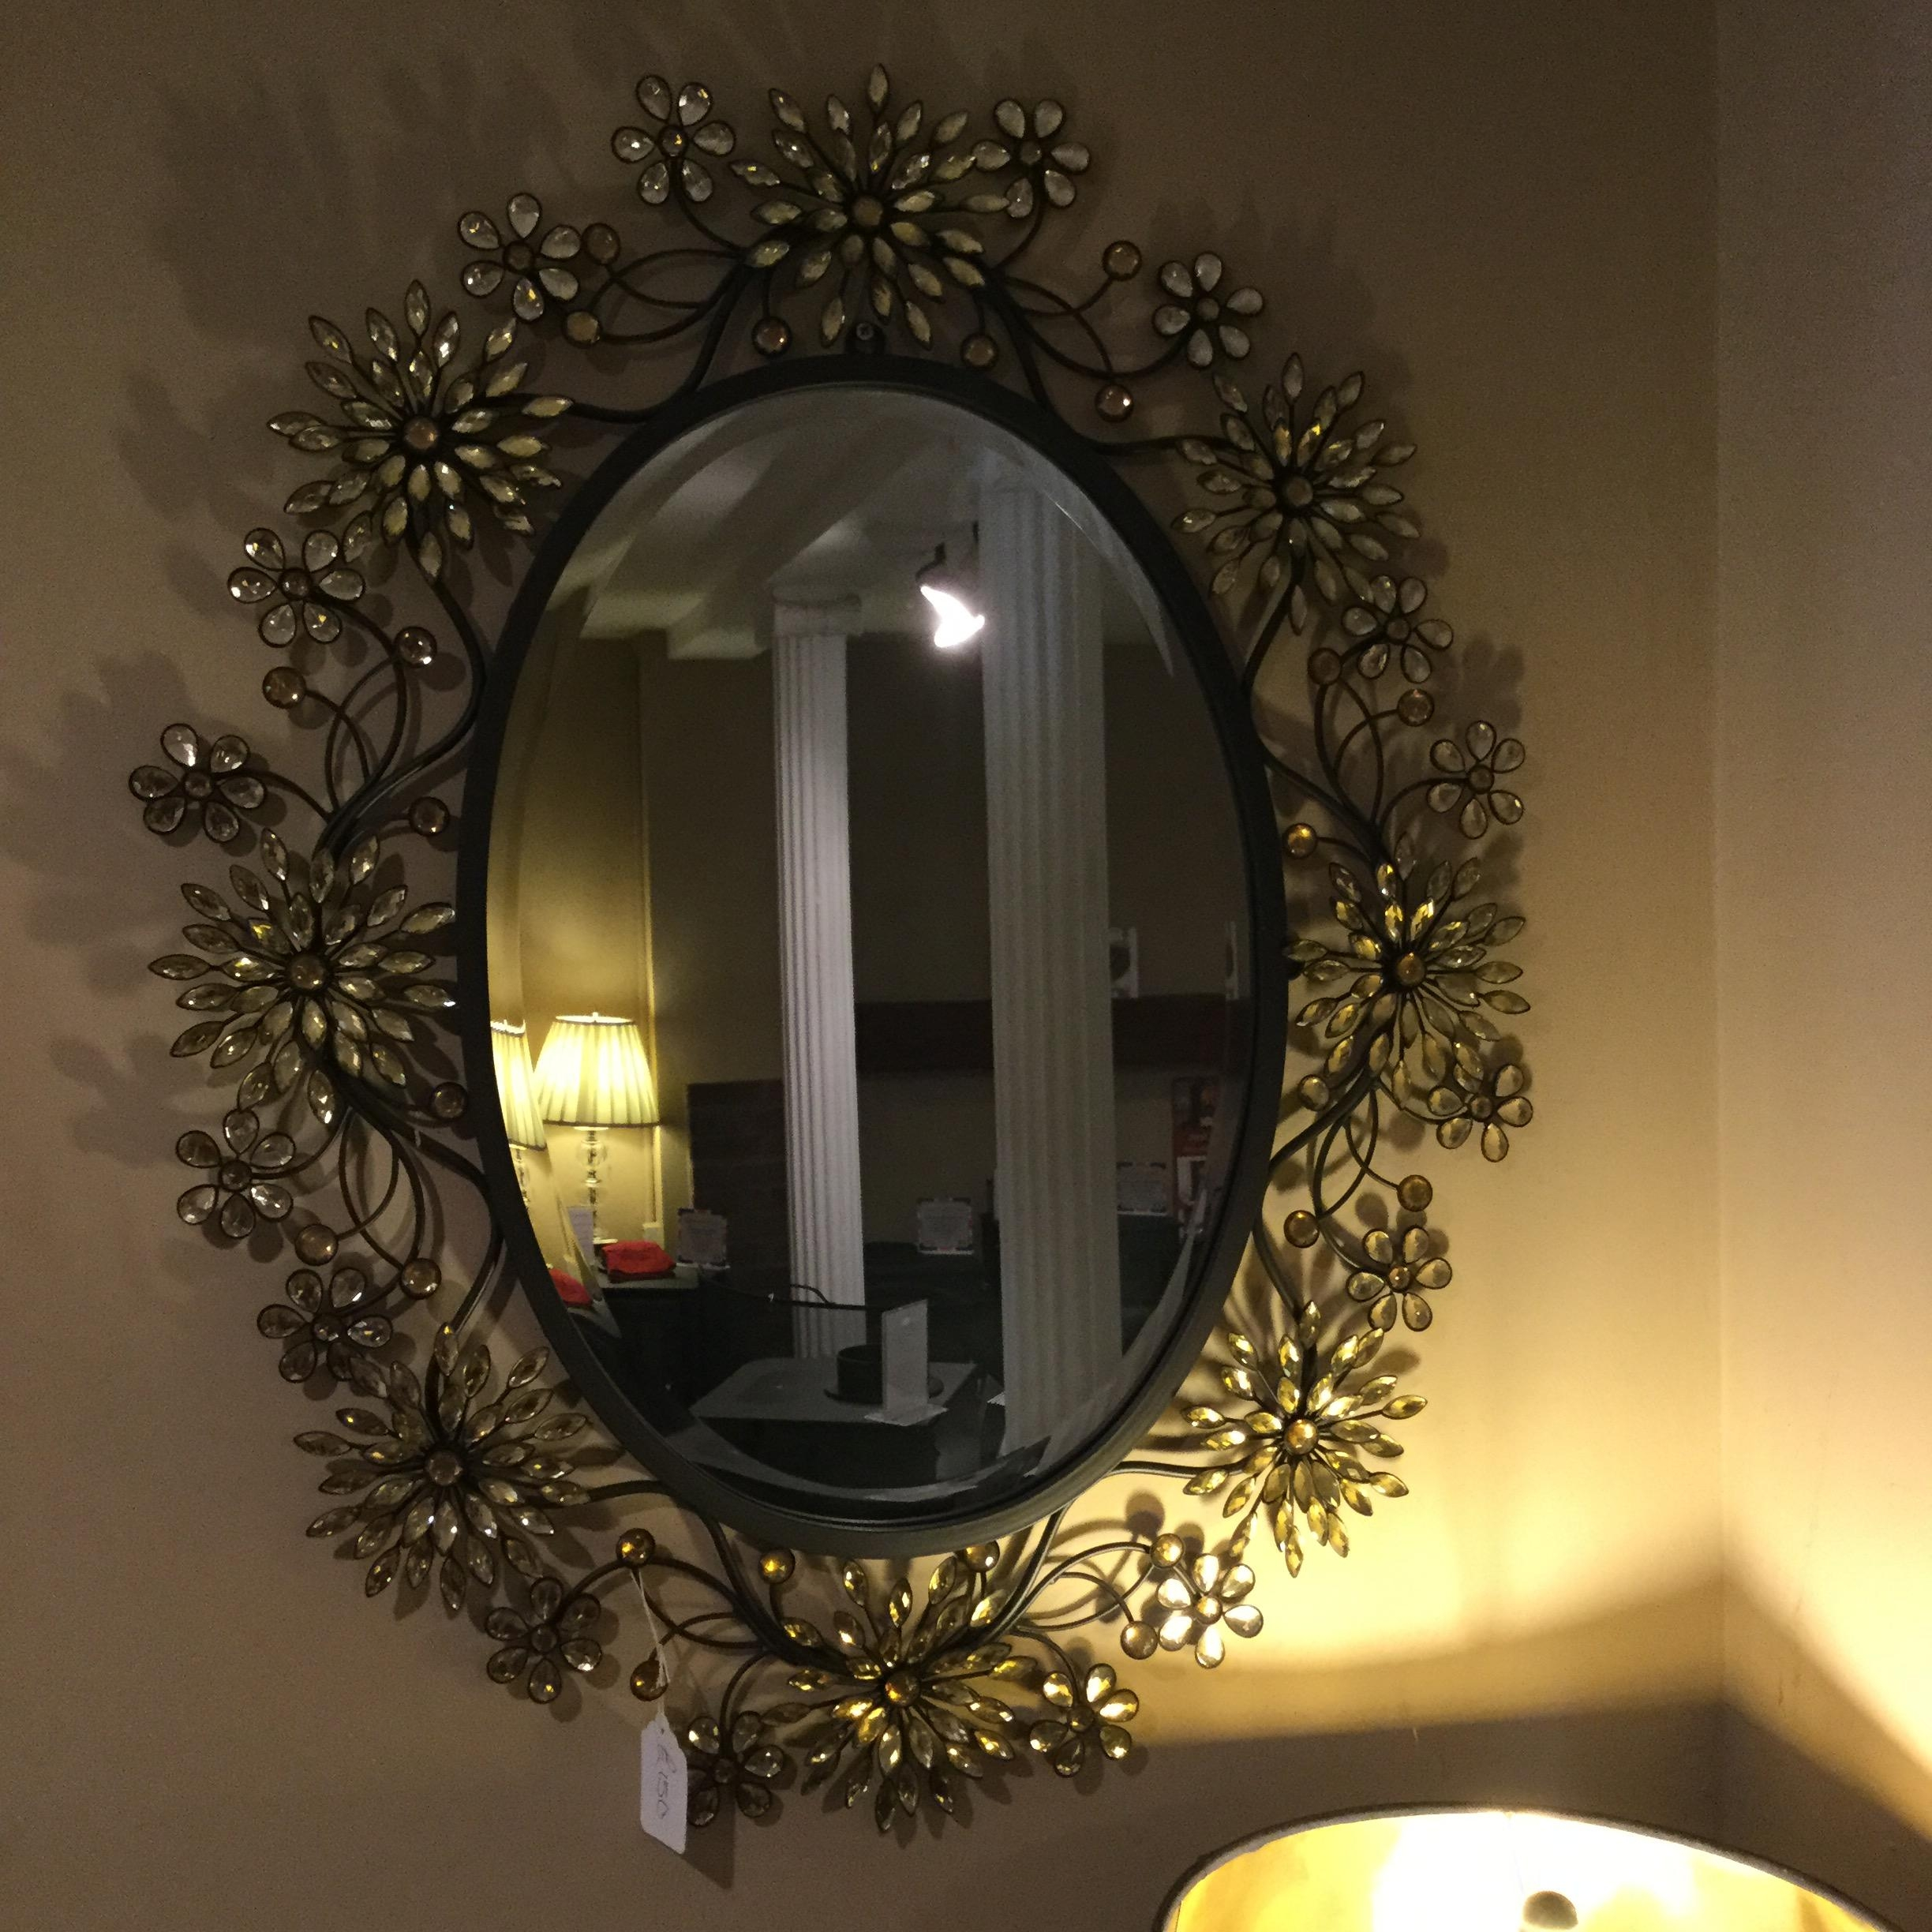 Fireplace Sale Showroom Near Halstead For Beautiful Mirrors For Sale (Image 4 of 20)